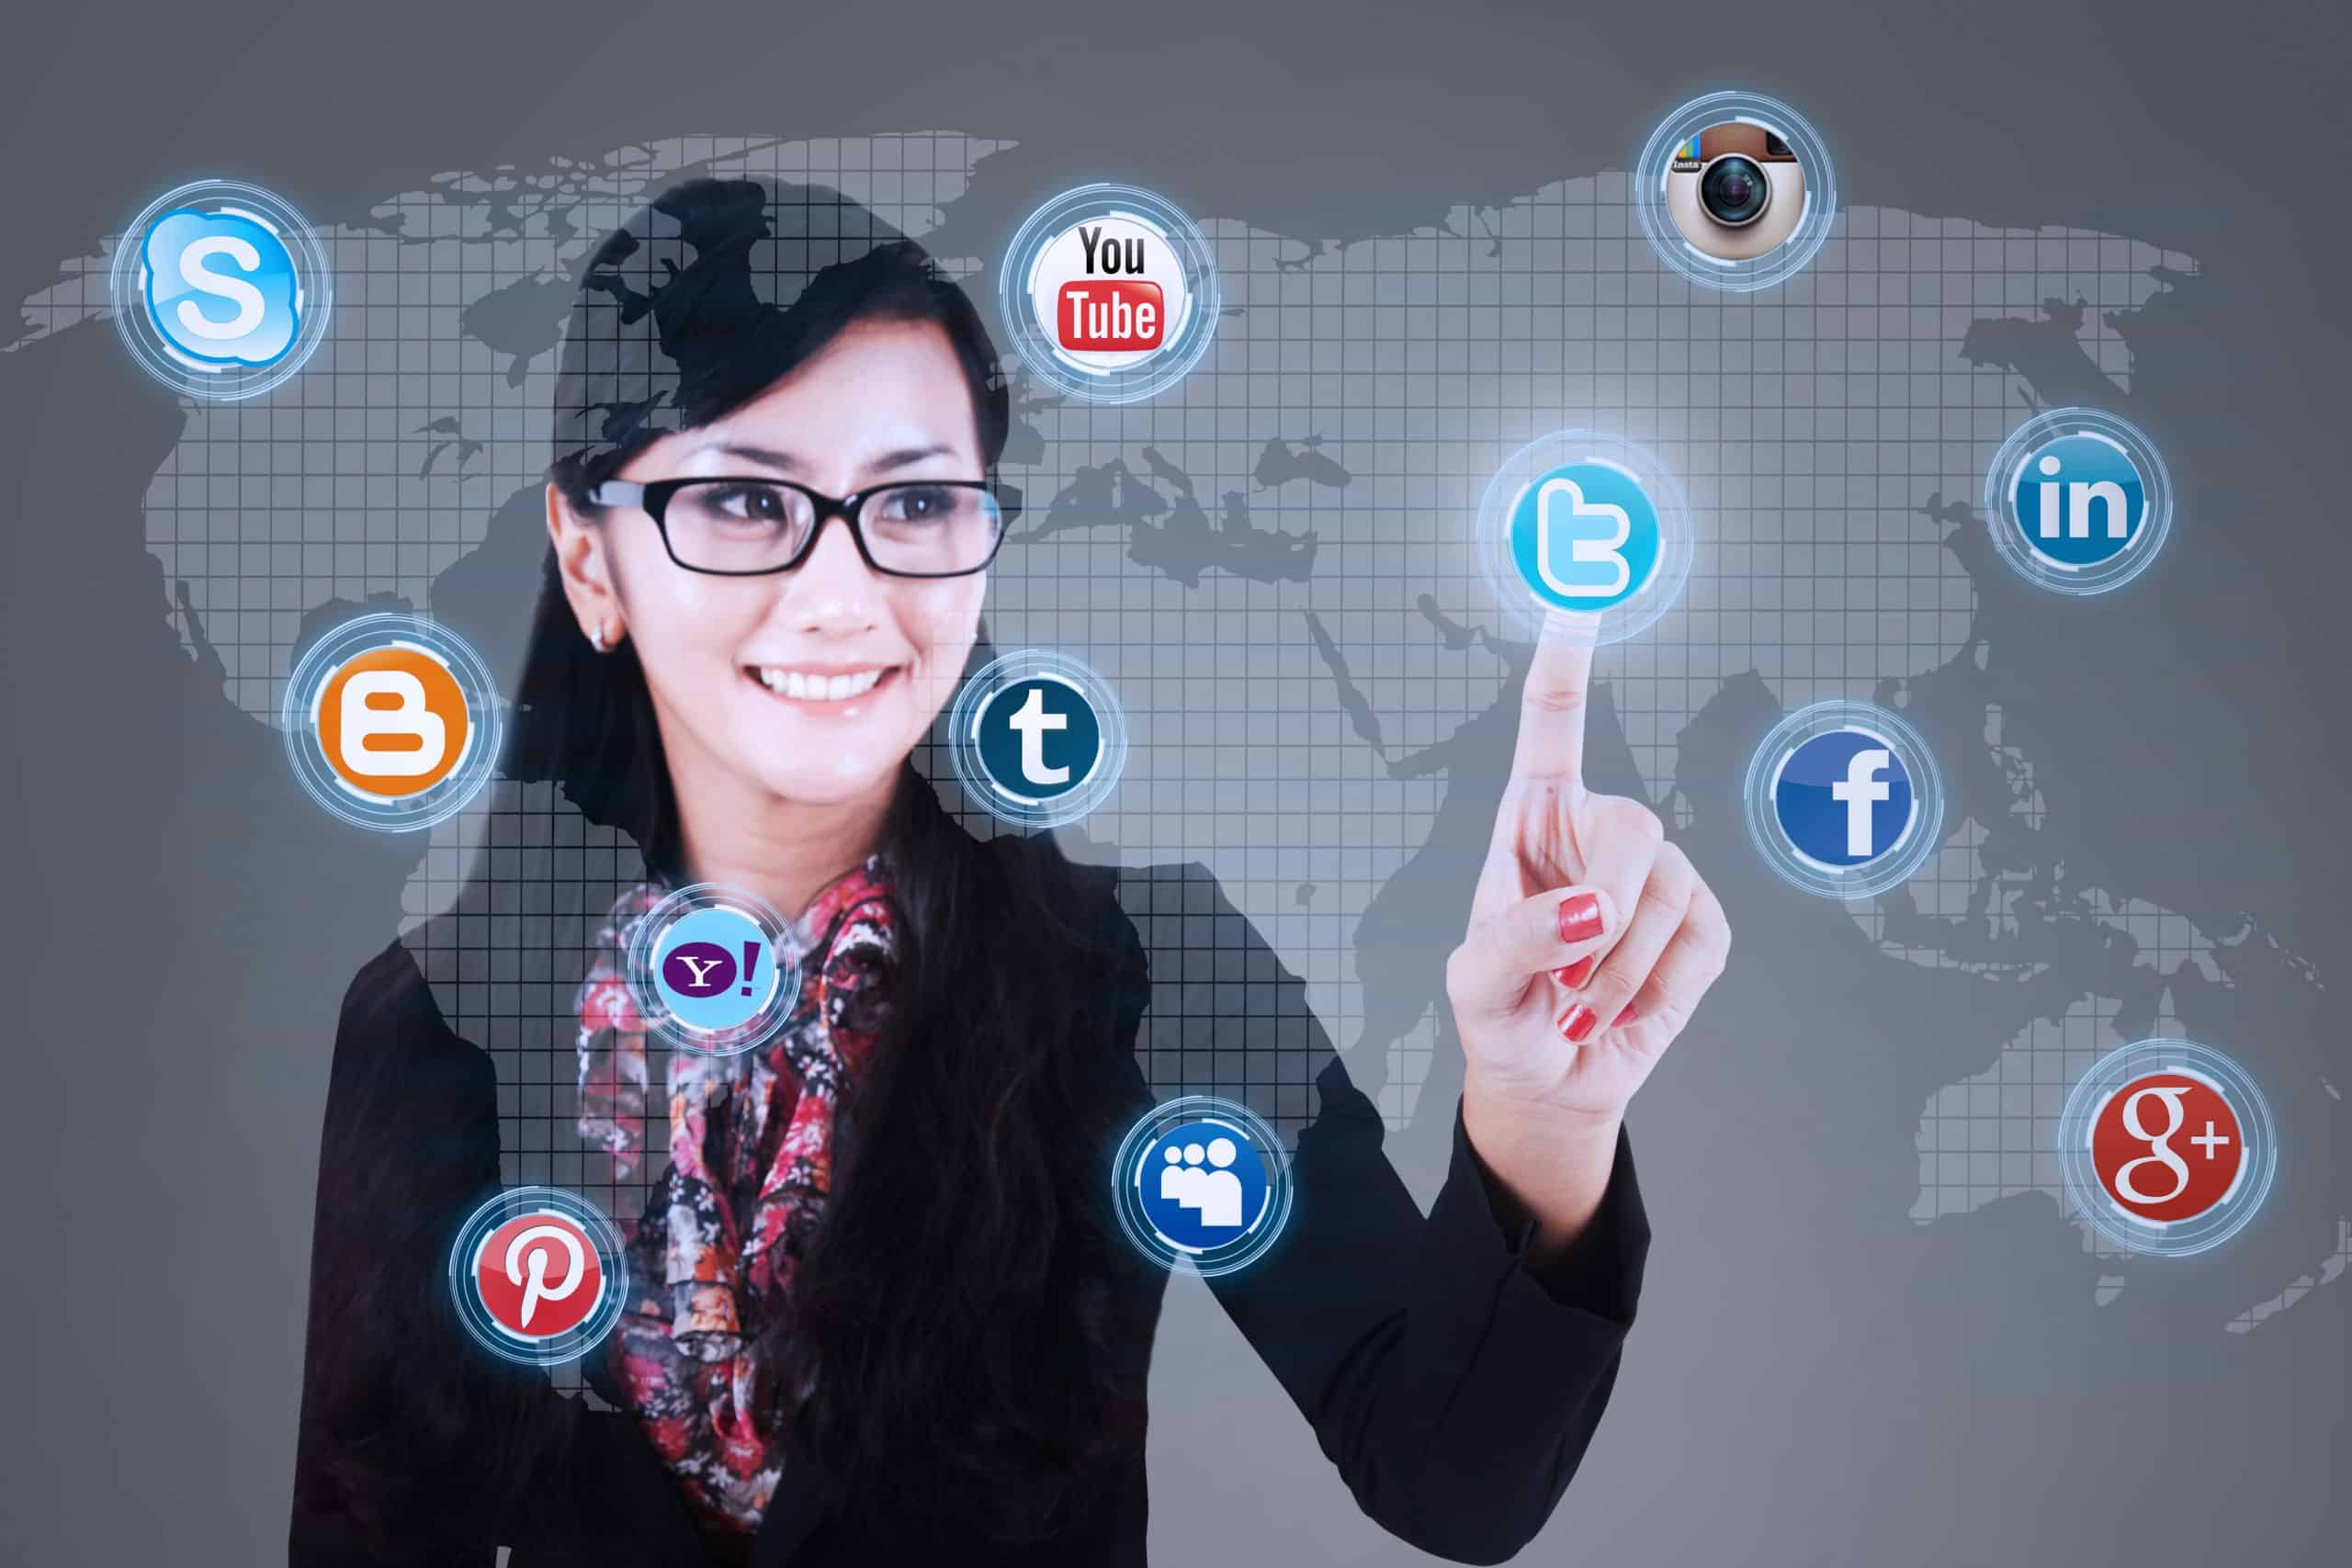 Save money on social media - Smart woman pointing to social media icons